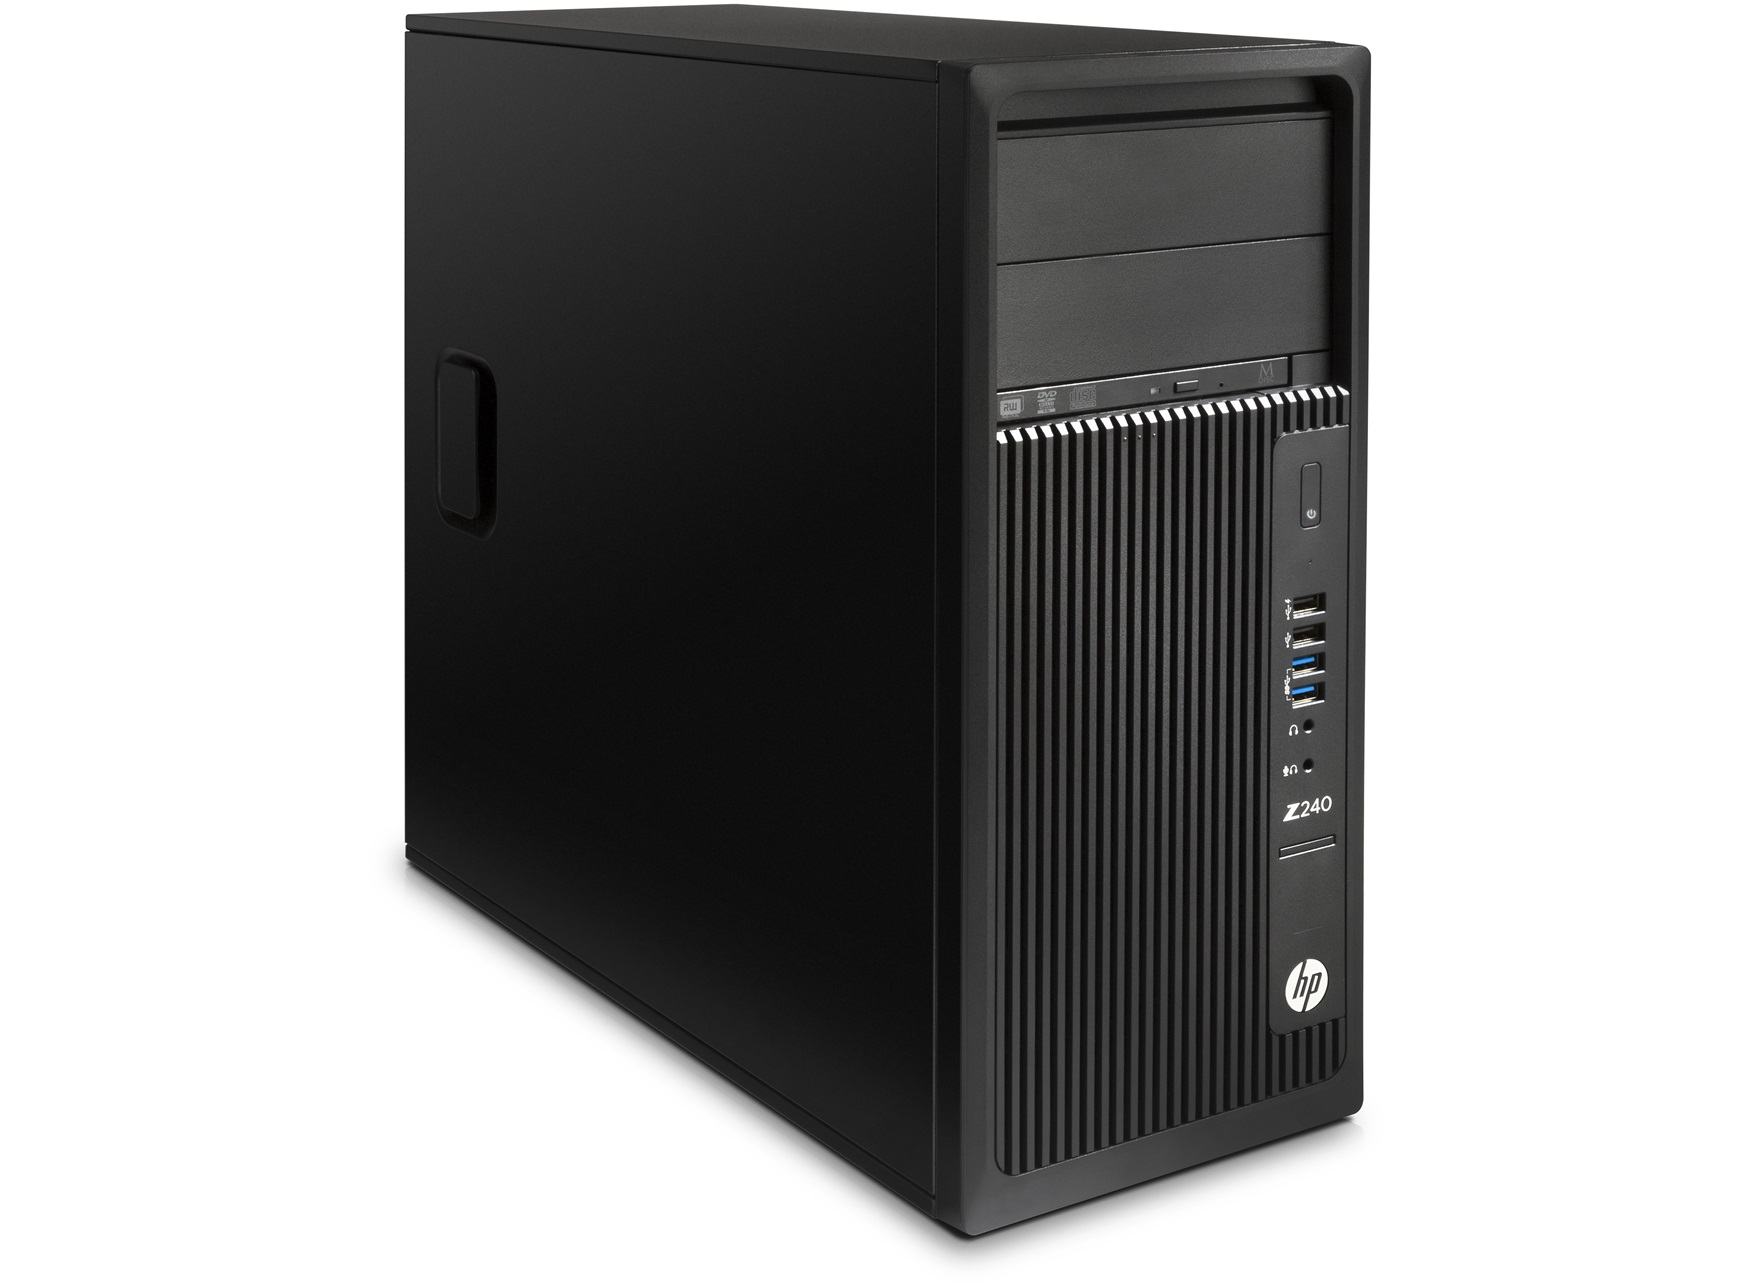 HP Z240 TWR Intel i7-6700 3.4GHz/8GB DDR4-2133 nECC (2x4GB)/1TB 7200ot/Intel HD GFX 530/Win 10 Pro+Win 7 Pro